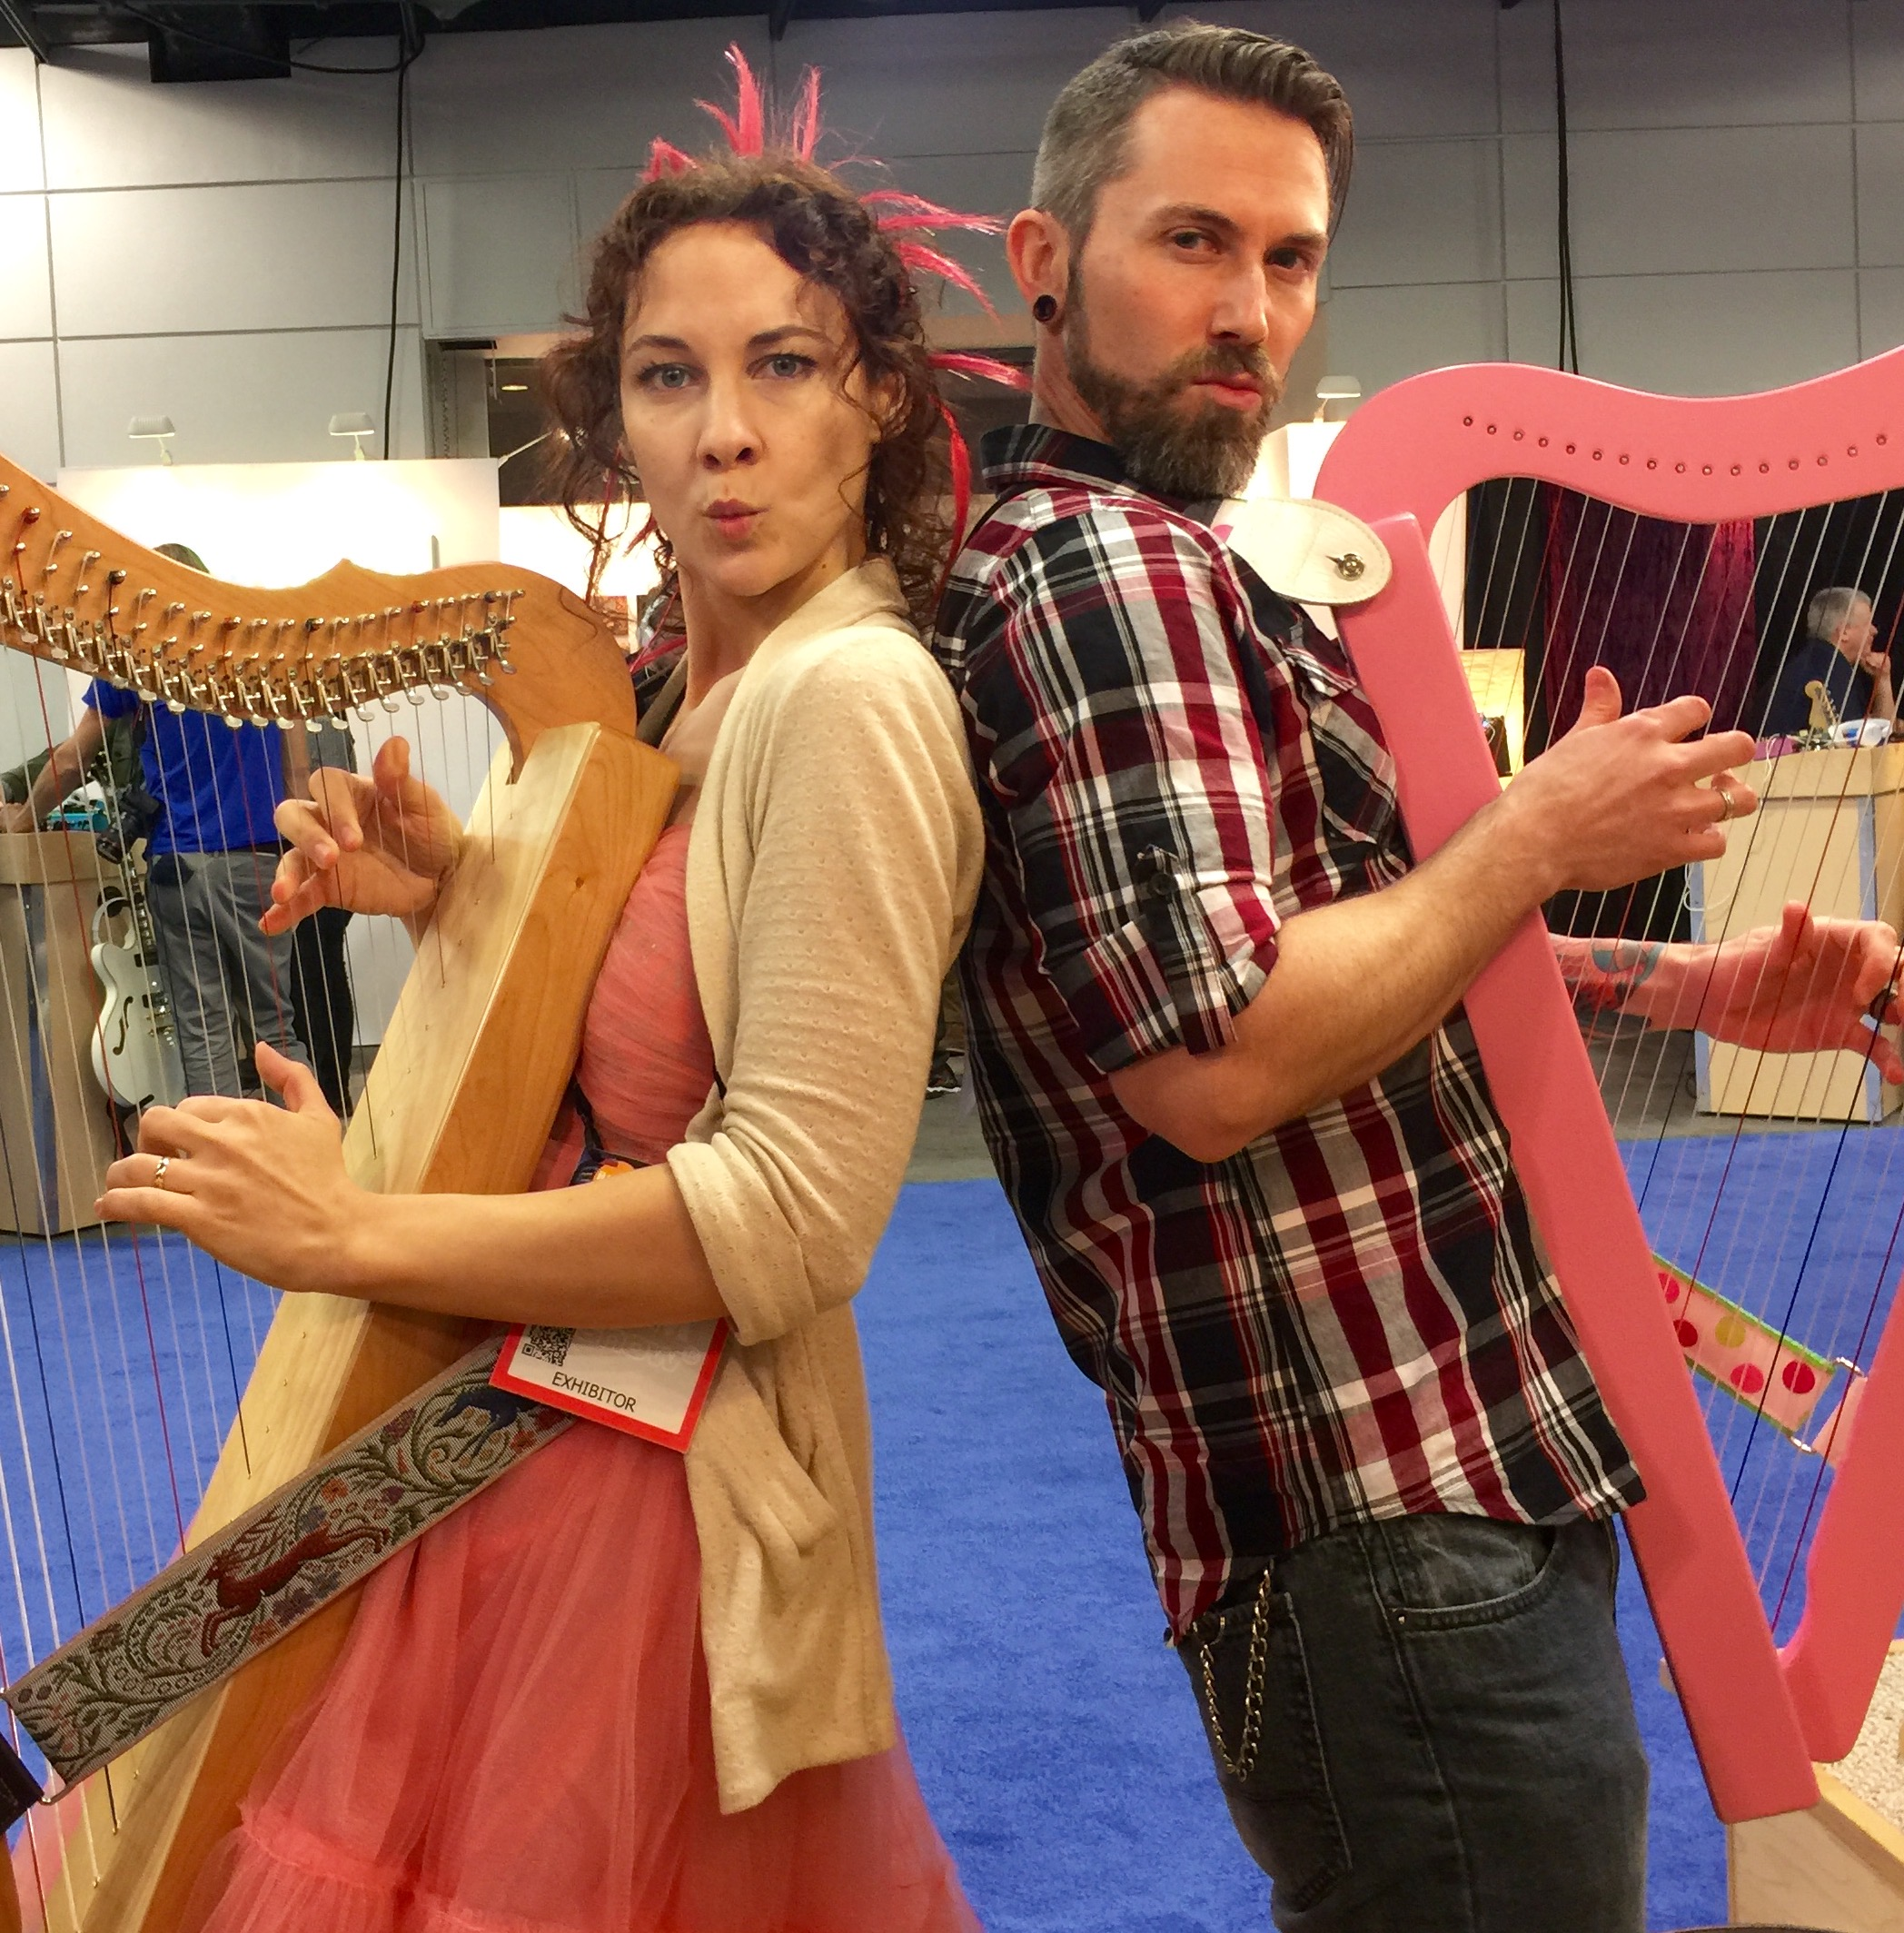 Camille Fournier & Garen Rees are VERY serious as they demonstrate Harpsicle® Harps at NAMM.